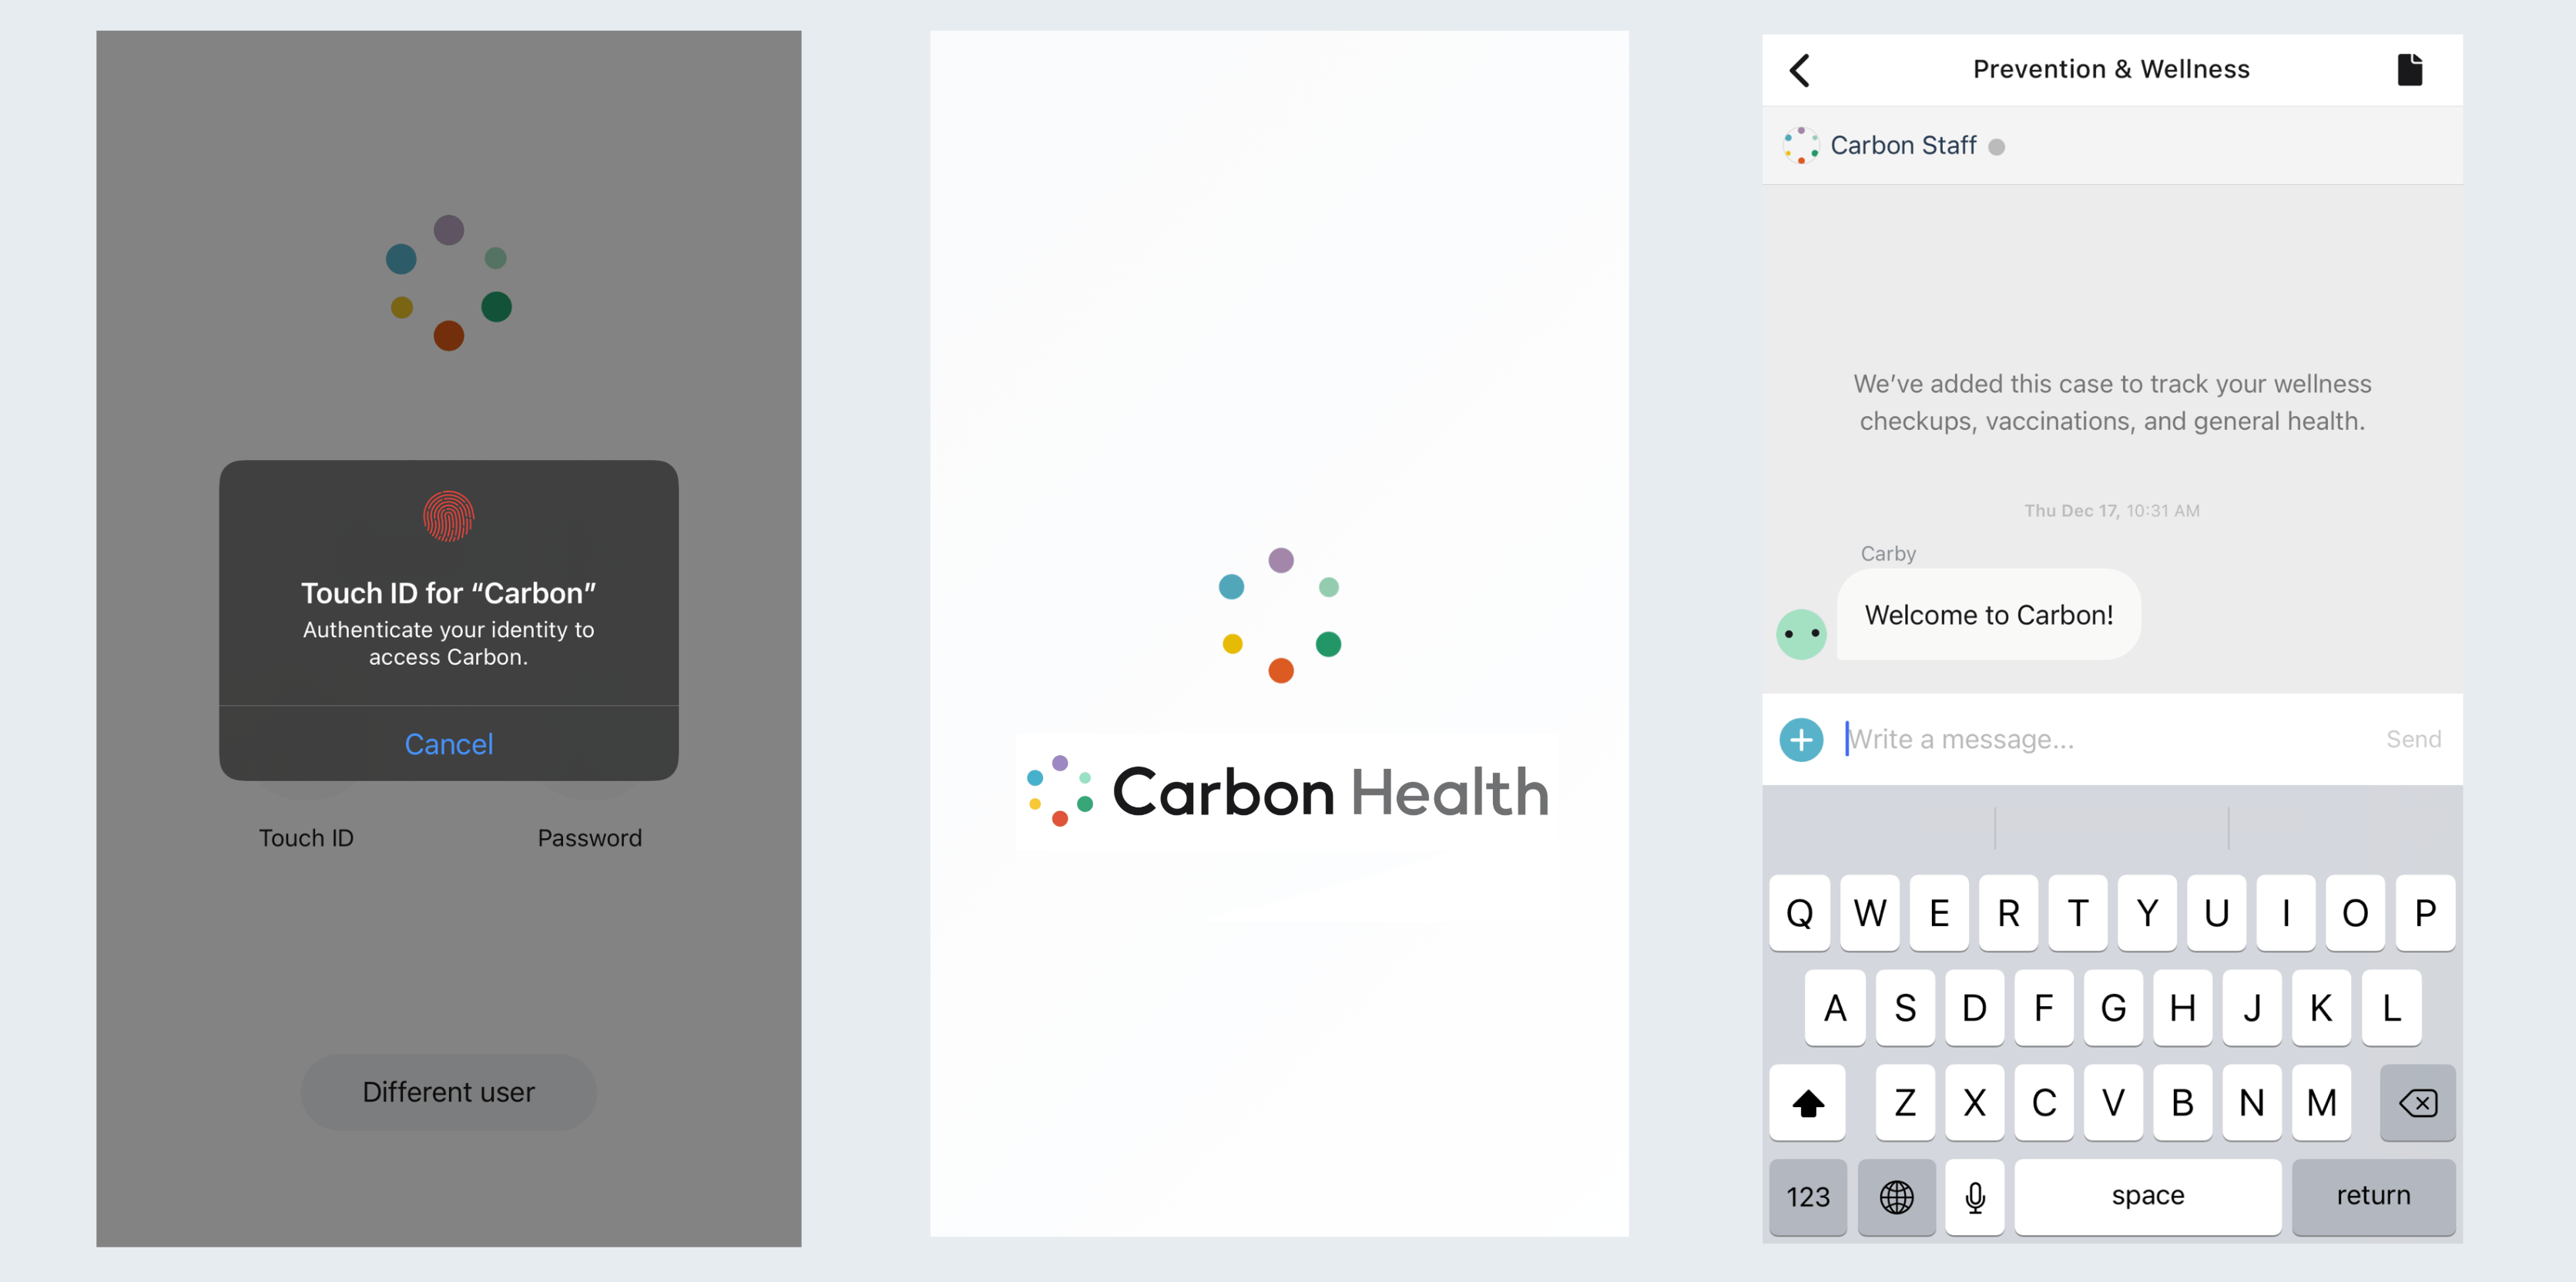 Screenshots compiled to one image to showcase Carbon Health app on ios three images side by side